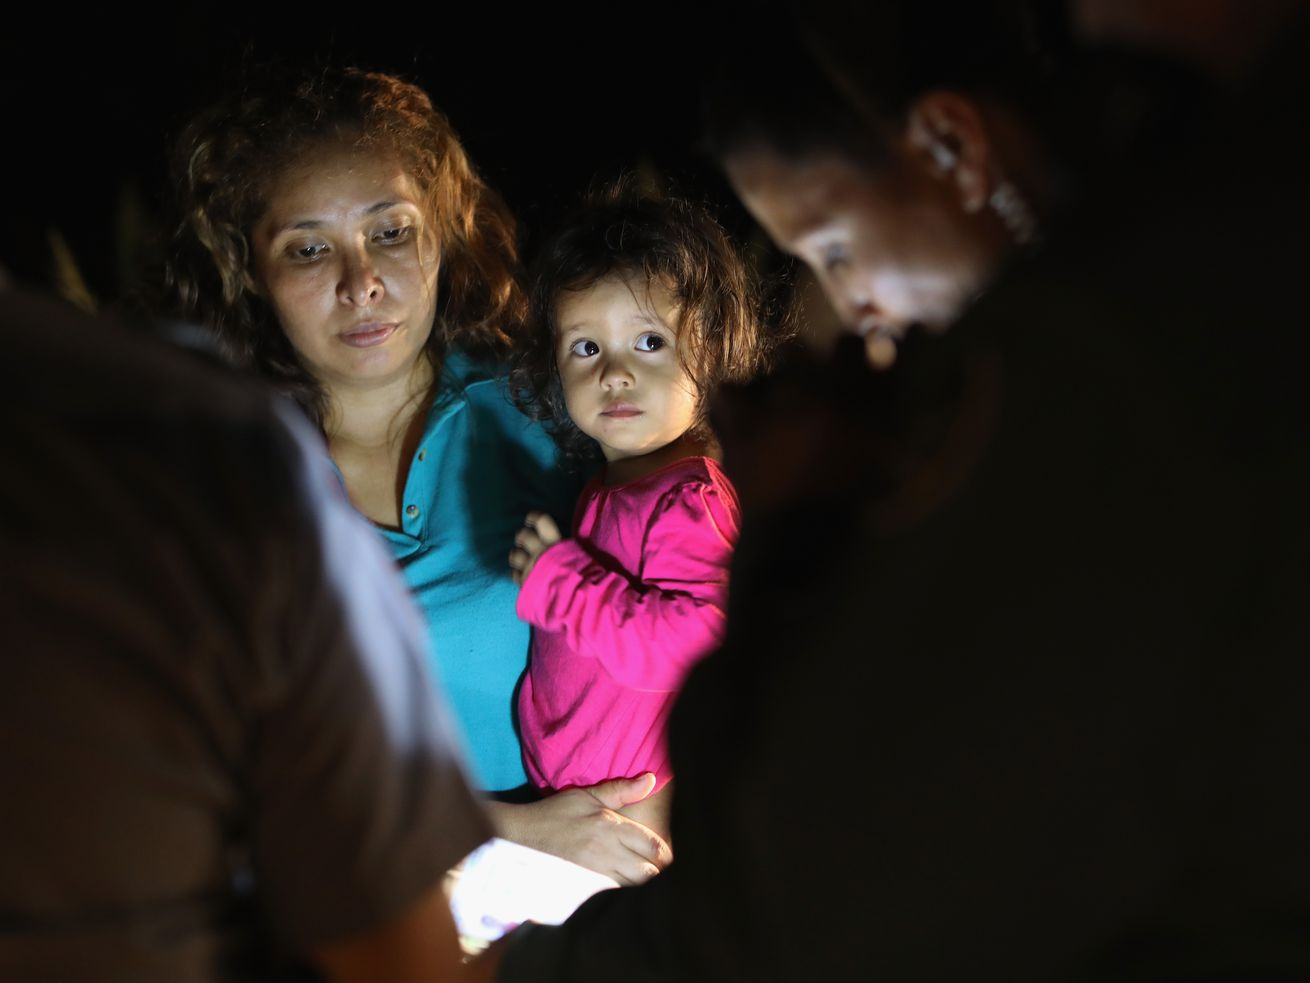 """The separation of thousands of children from their parents at the US-Mexico border, a result of the Trump administration's """"zero-tolerance"""" policy of prosecuting parents for illegal entry, is spurring liberals and some conservatives to denounce the administration as heartless. But separating kids from their parents isn't just about morals; it also has long-term consequences for a child's mental and physical health."""